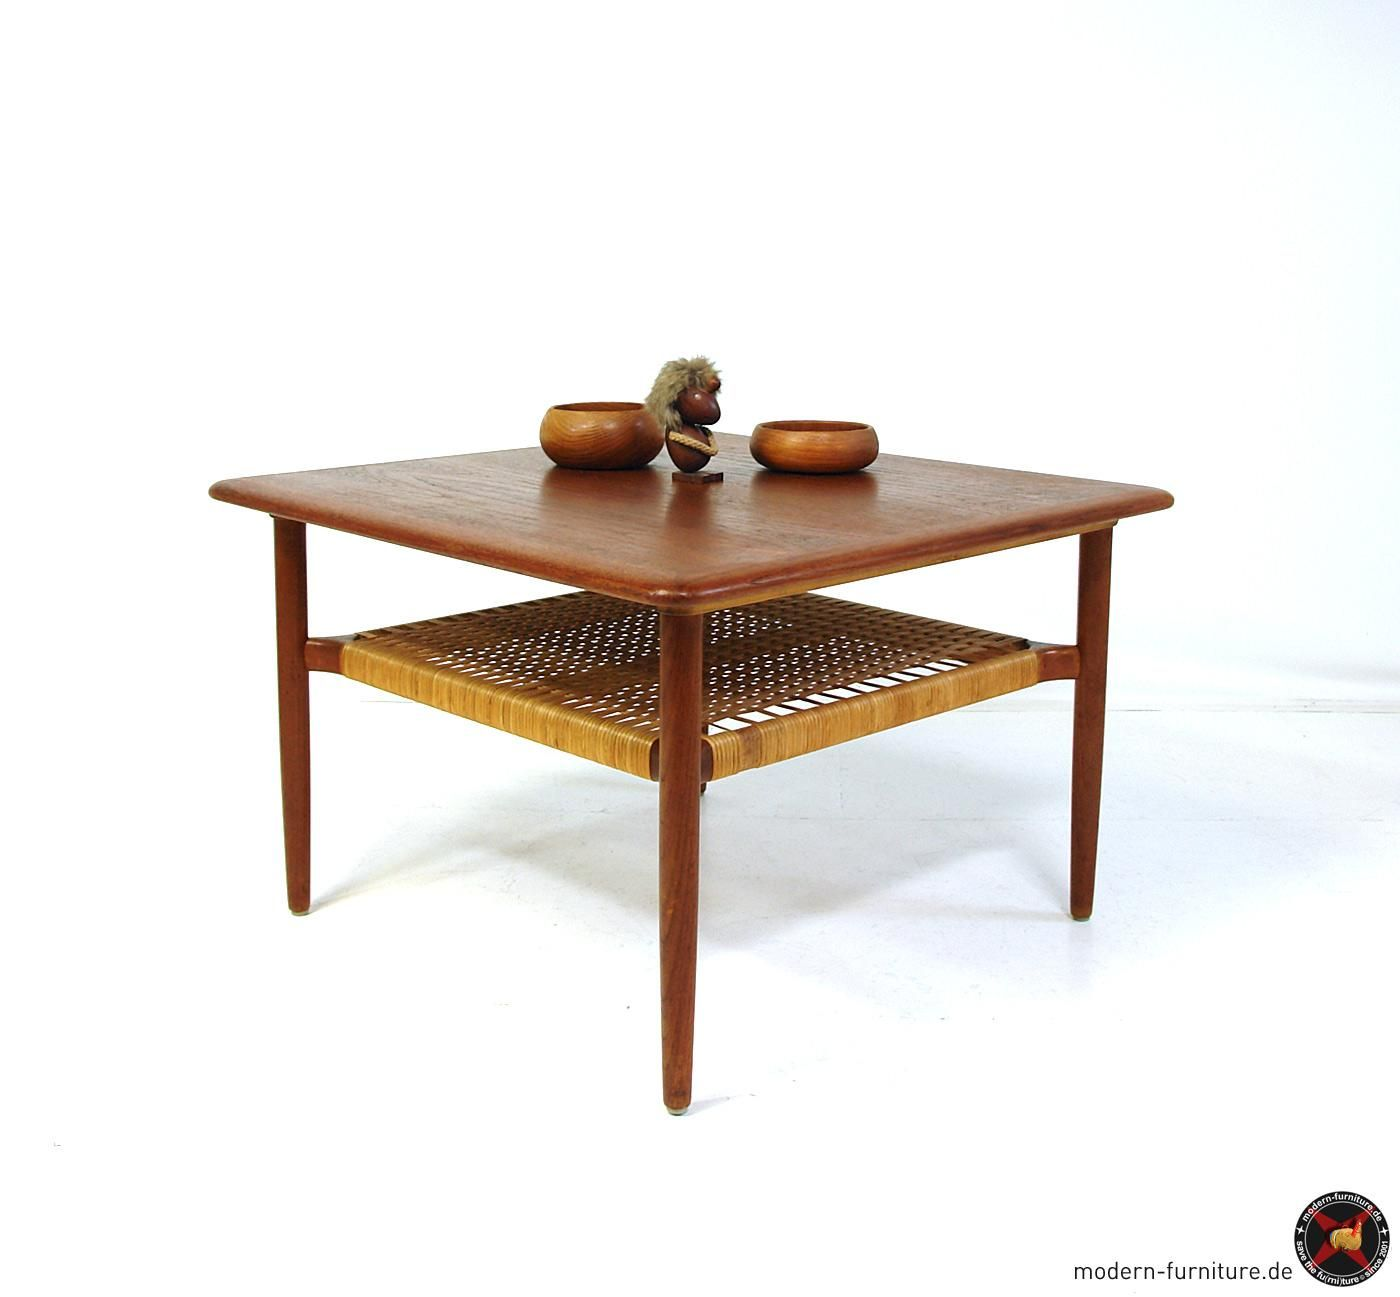 Areaneo Danish Modern Square Teak And Wicker Coffe Table 1950 59 No 214 [ 1297 x 1400 Pixel ]